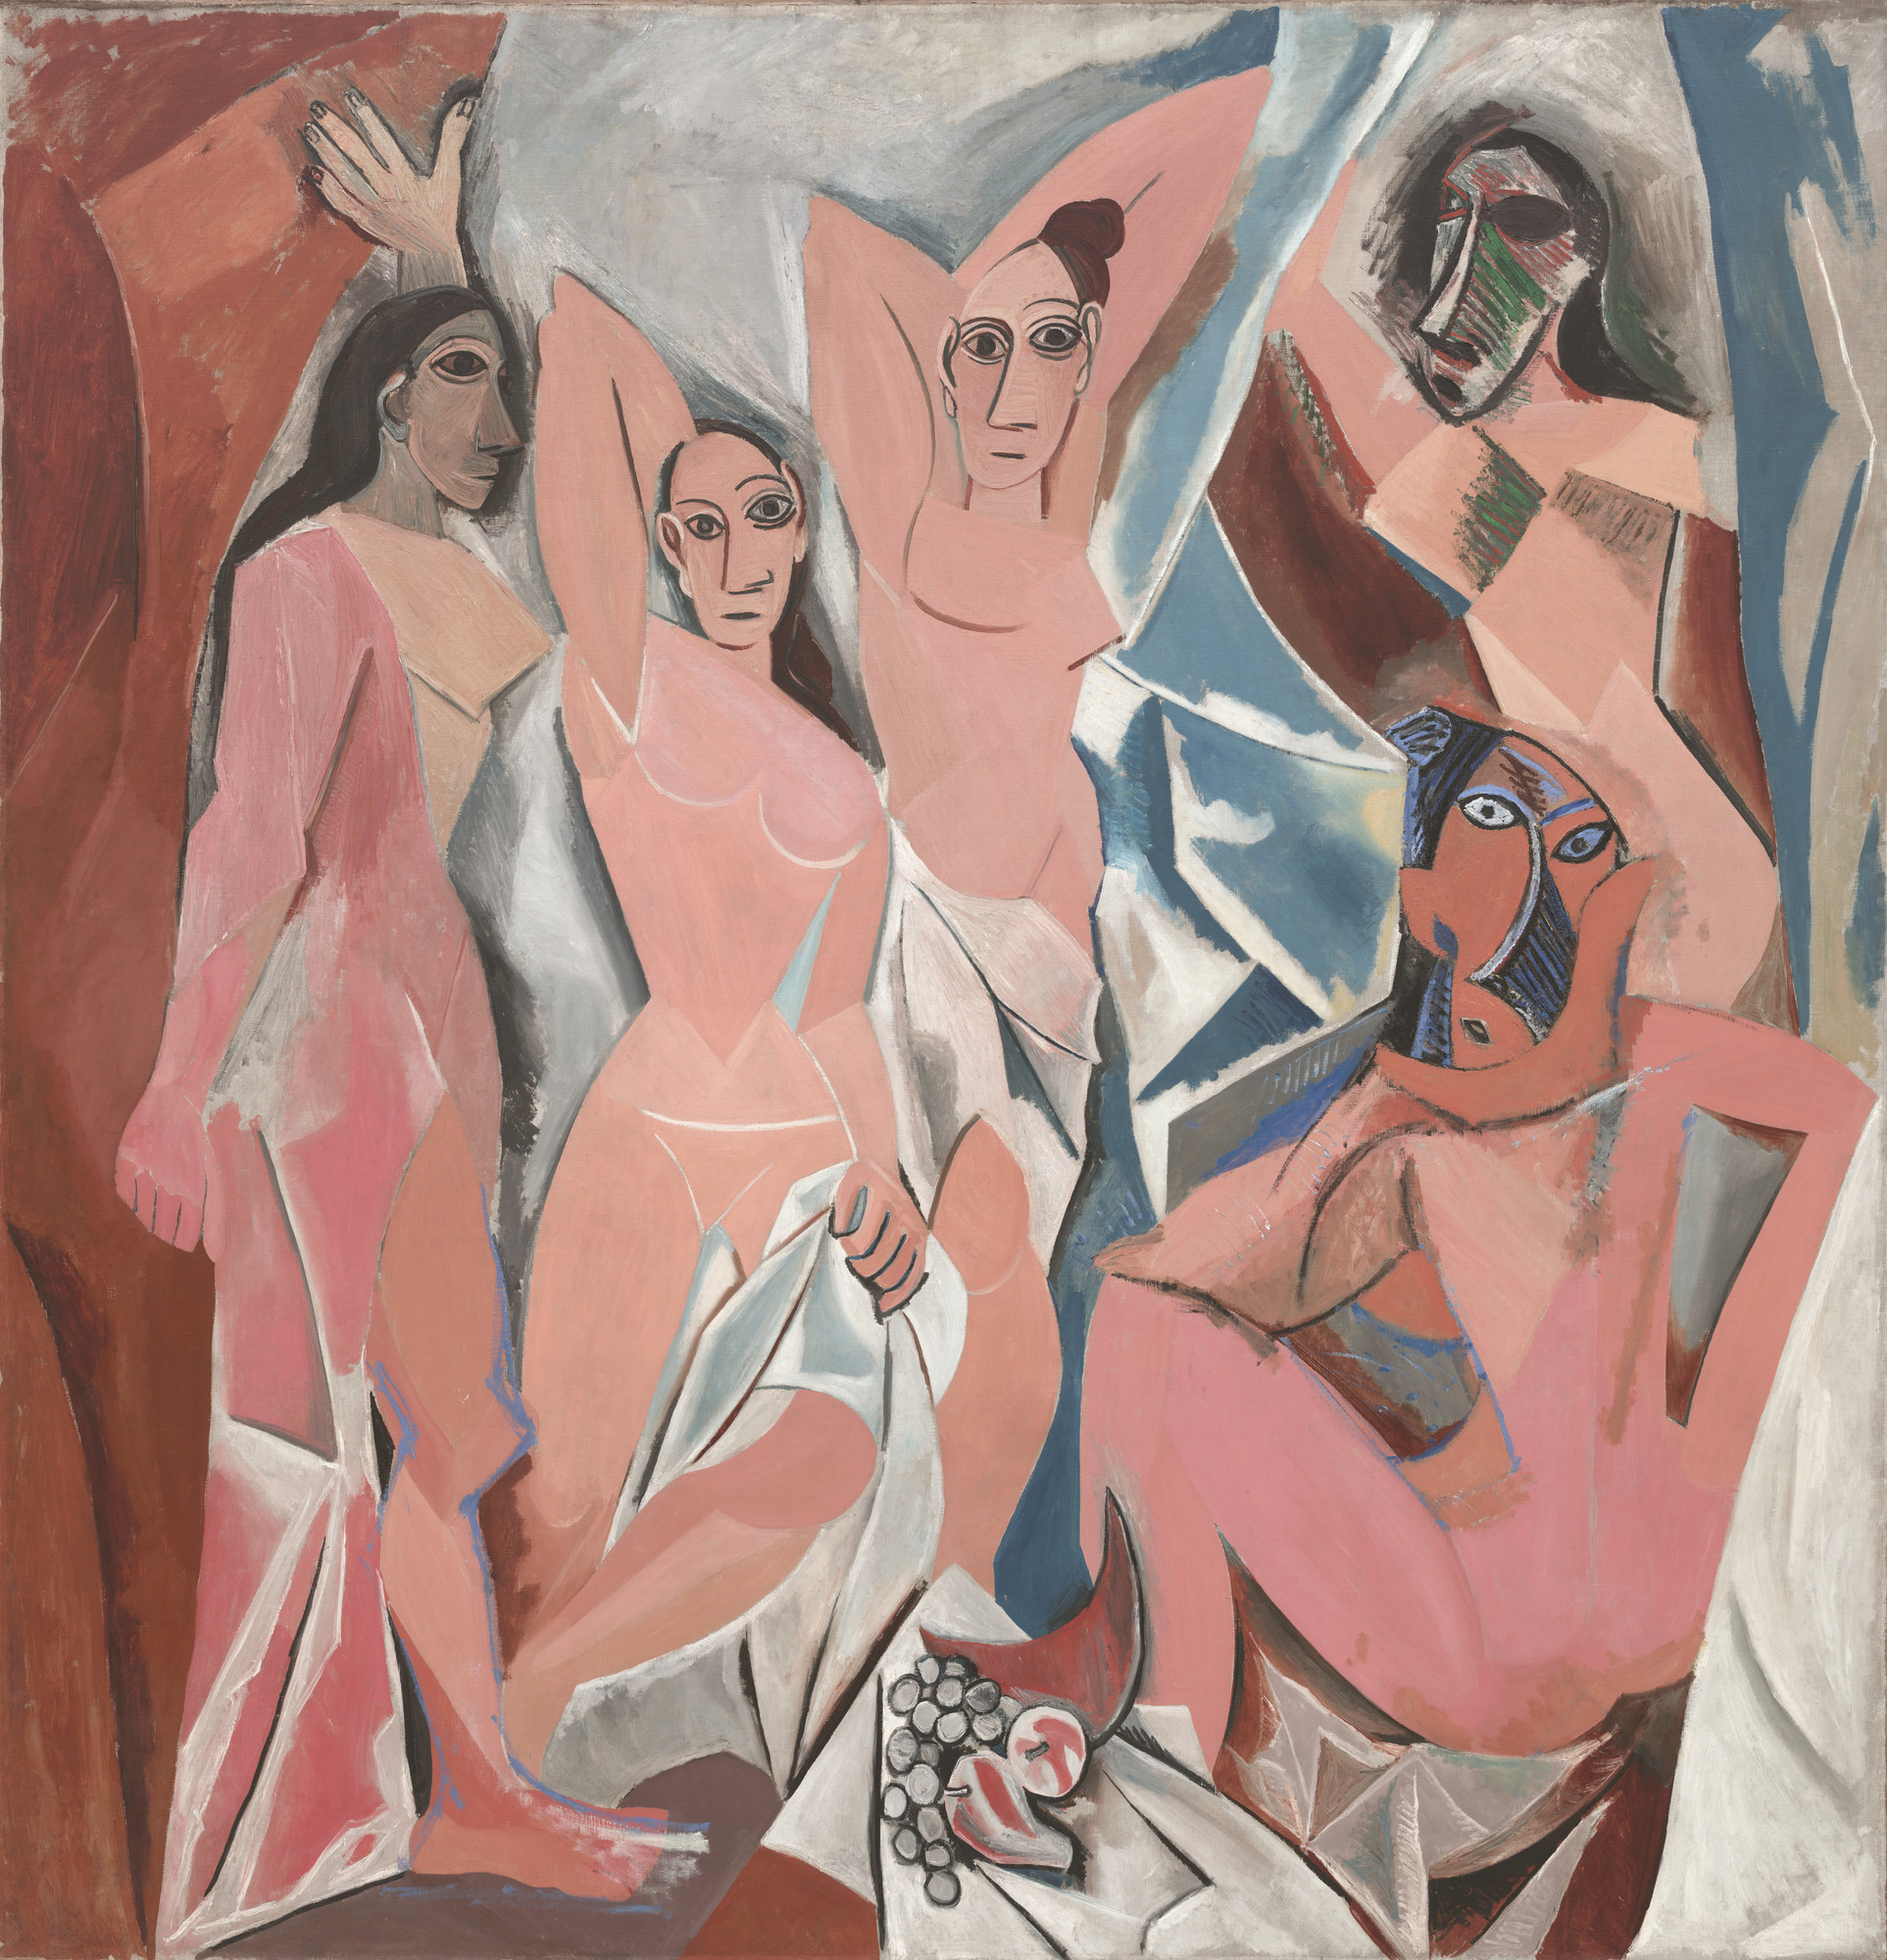 Pablo Picasso. *Les Demoiselles d'Avignon. Paris, June–July 1907. Oil on canvas, 8ʹ × 7ʹ 8ʺ (243.9 × 233.7 cm). Acquired through the Lillie P. Bliss Bequest. © 2016 Estate of Pablo Picasso / Artists Rights Society (ARS), New York